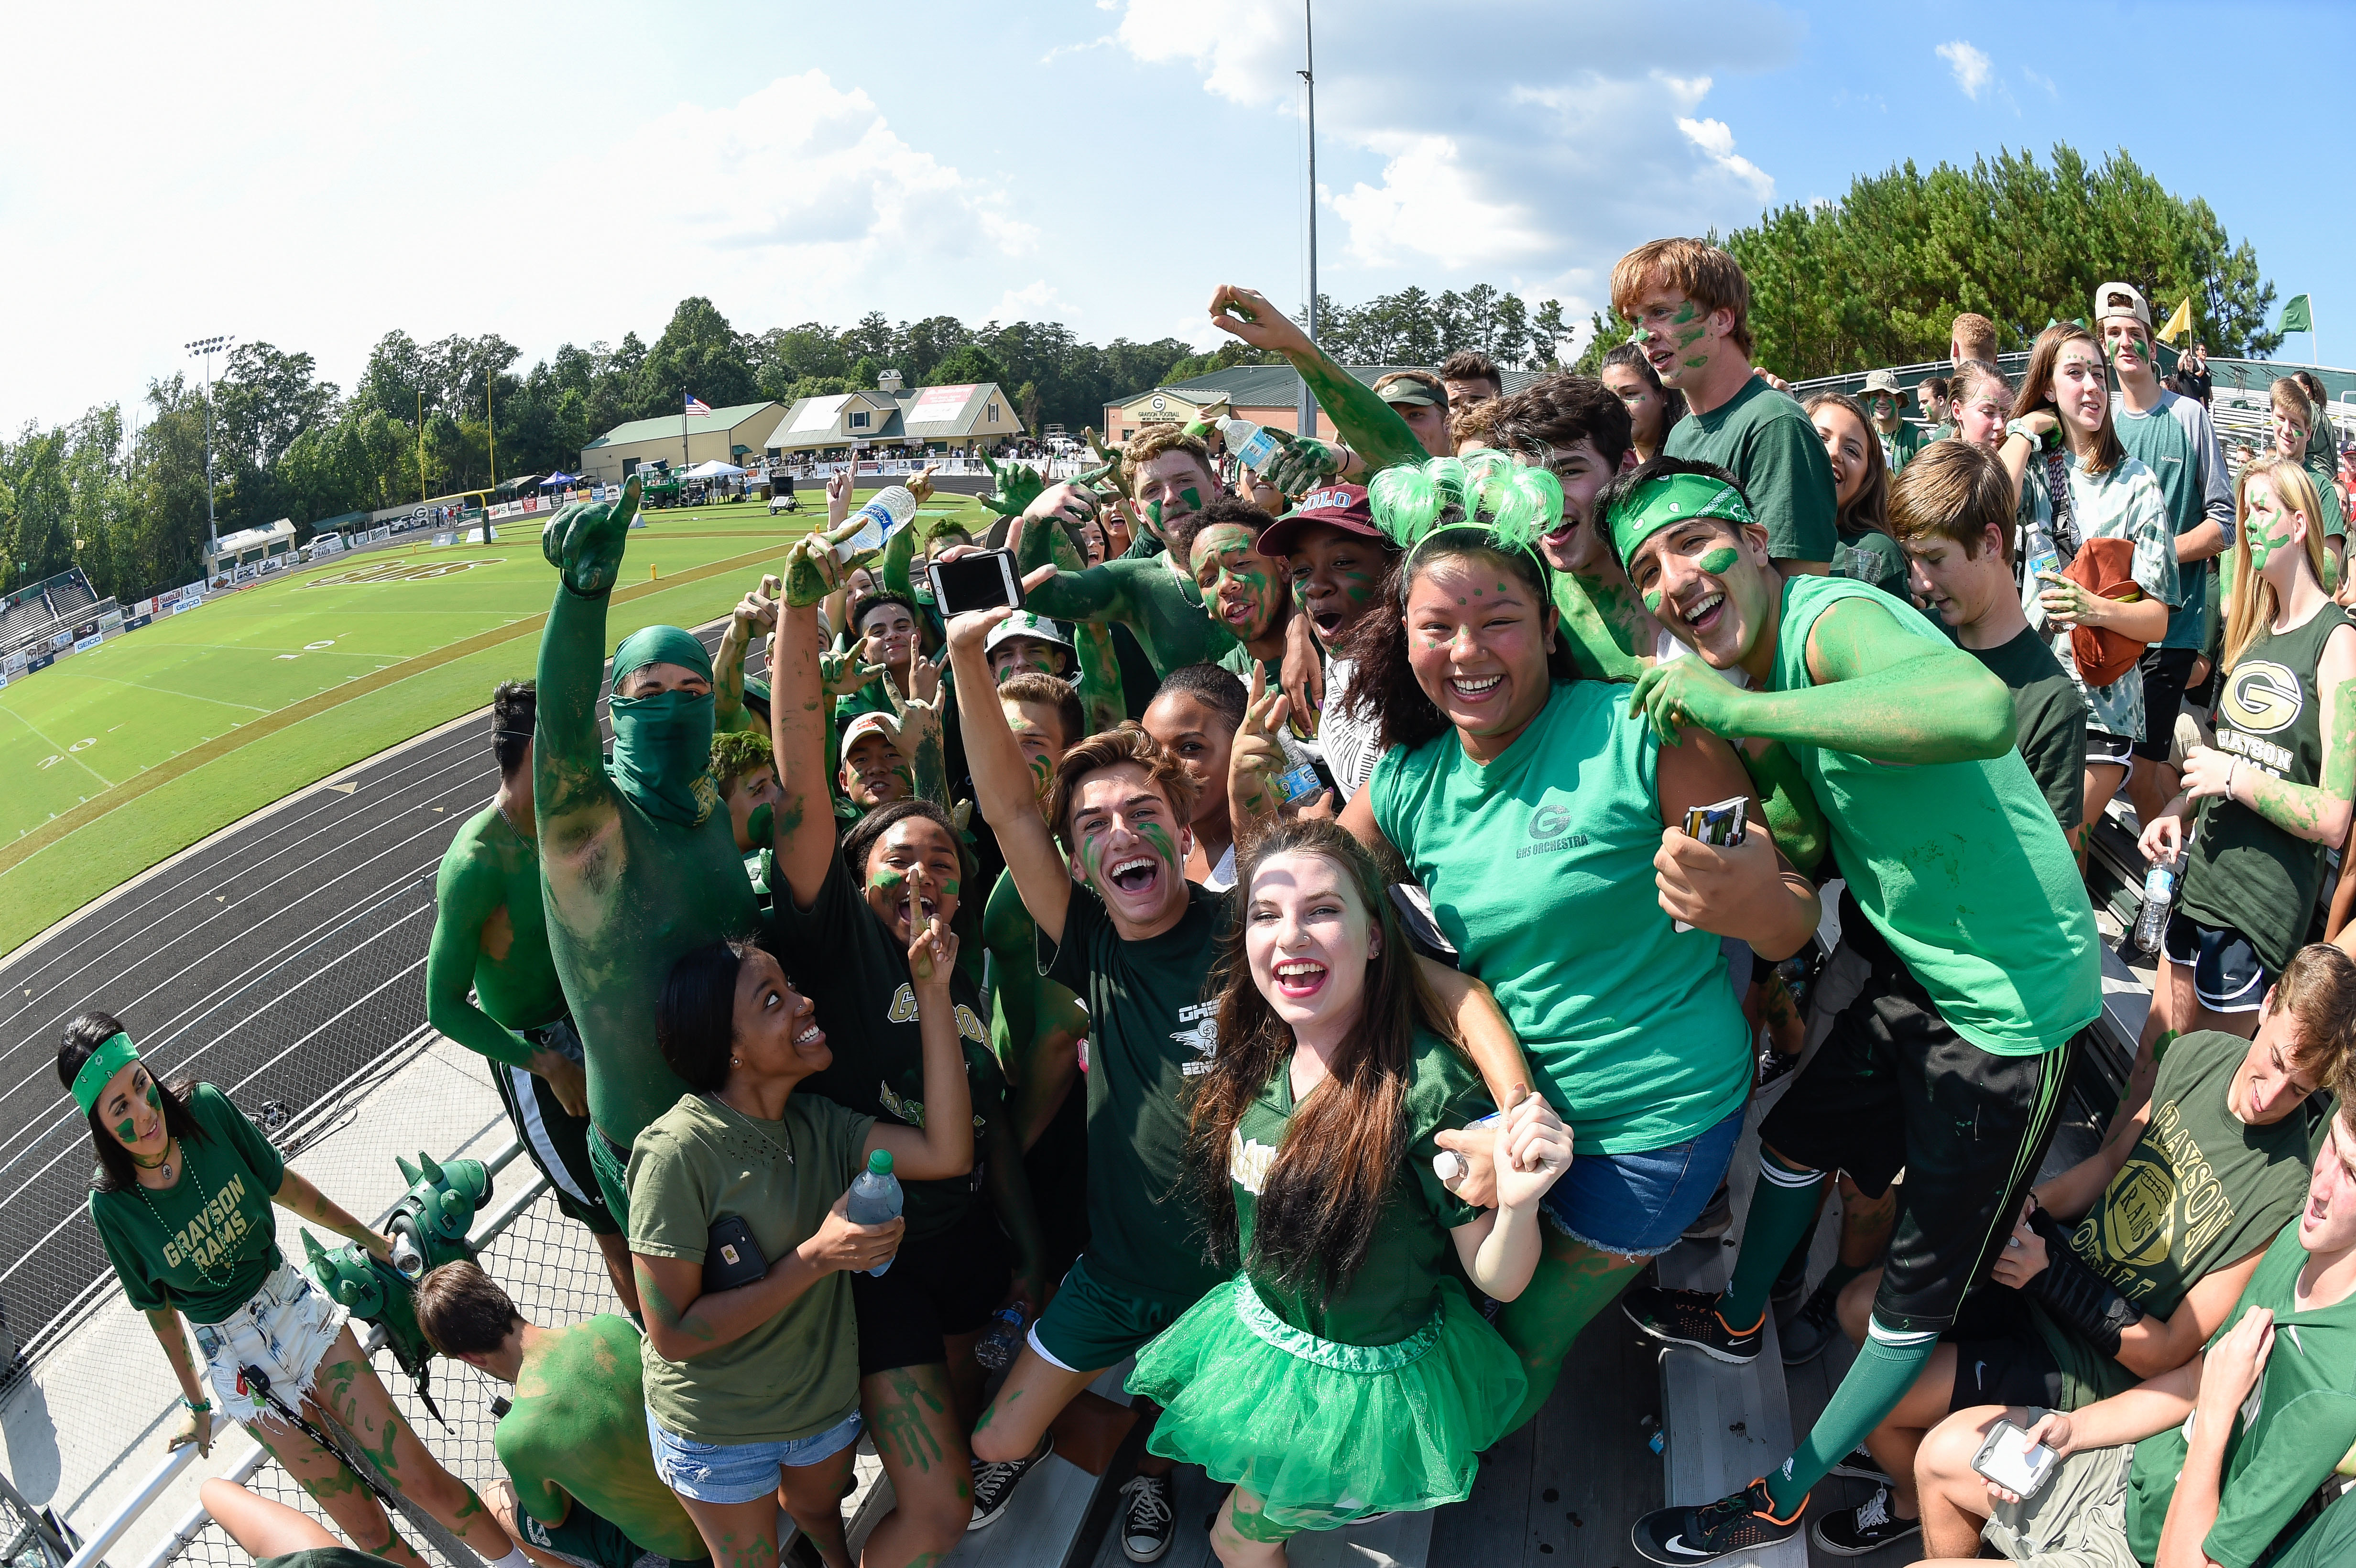 Aug 27, 2016; Loganville, GA, USA; Grayson Rams fans prior to the game against IMG Academy in a high school football duel of top ranked teams at Grayson Community Stadium. Mandatory Credit: Dale Zanine-USA TODAY Sports ORG XMIT: US 135350 high school prep 8/27 ORIG FILE ID: 20160827_lbm_sz2_042.JPG